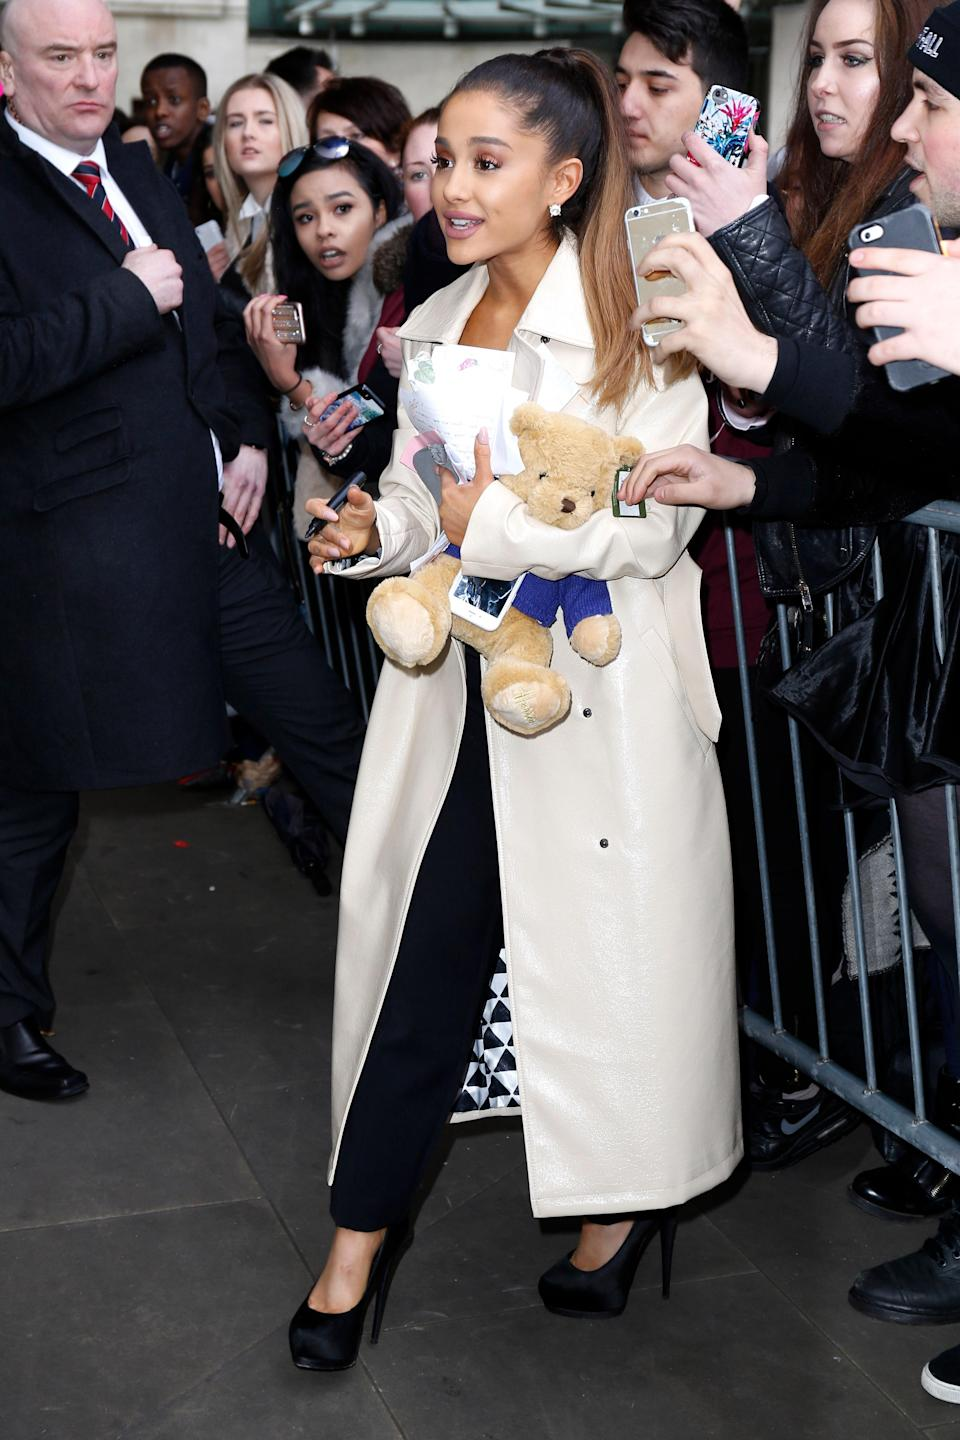 Posh Grande on the scene. The singer paired black skinnies with a tailored ankle-grazing white trench to look like the boss lady we've come to recognize her as.